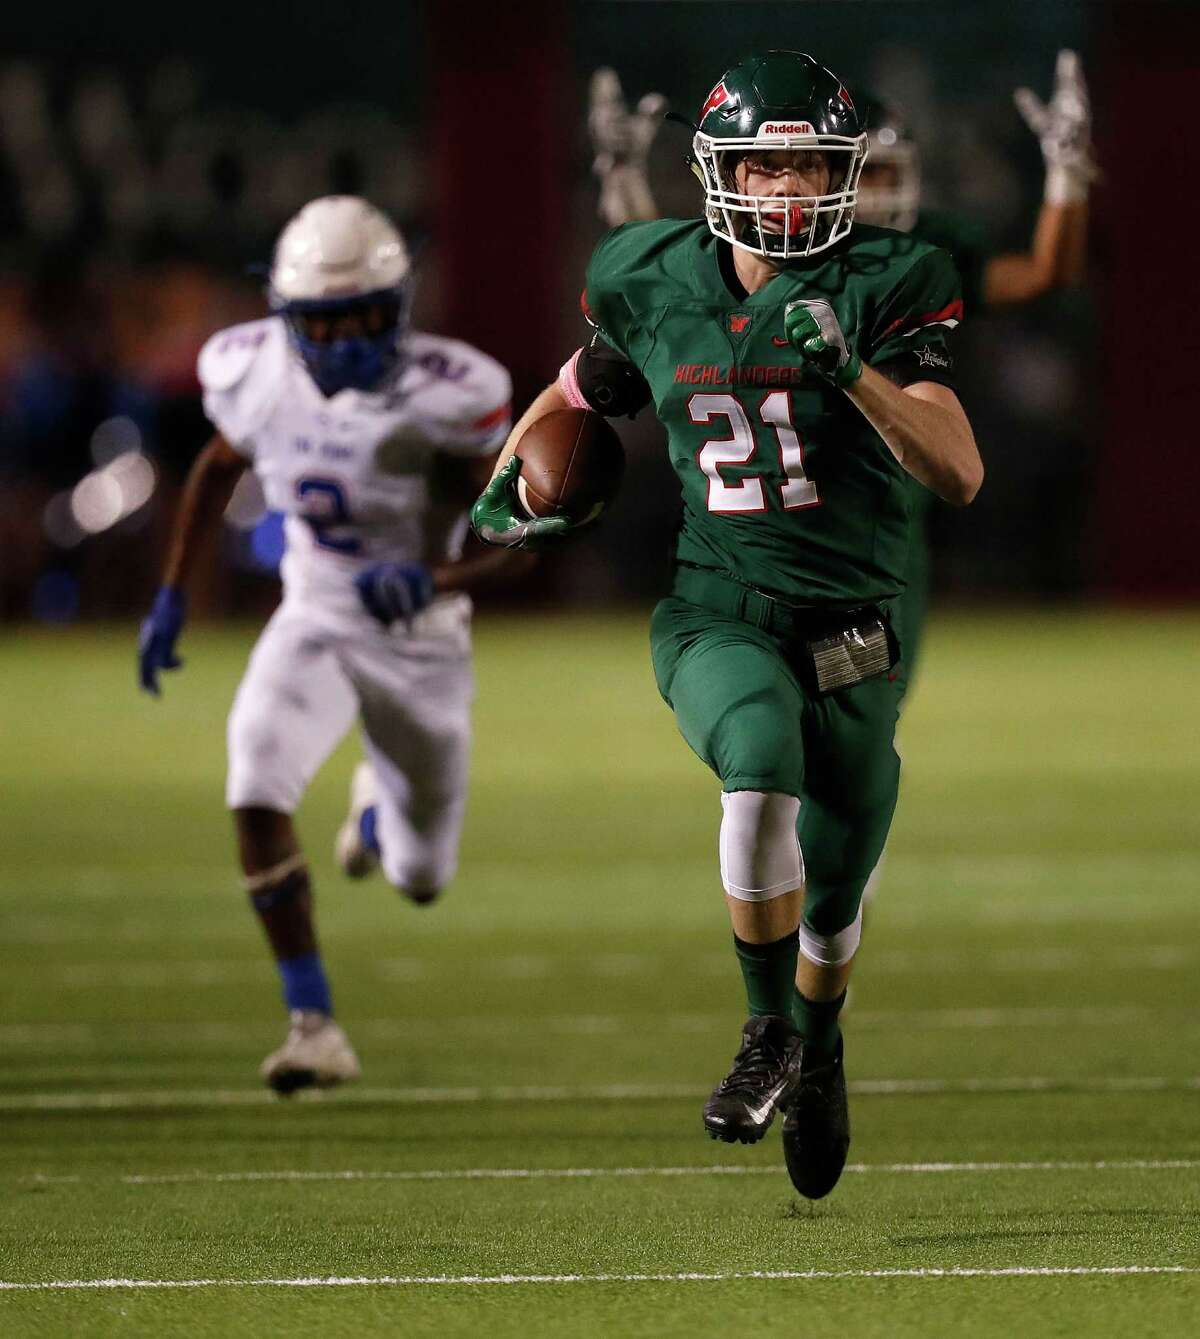 The Woodlands' outside linebacker Grant Milton (21) runs the ball in for the touchdown after intercepting a pass intended for Oak Ridge's wide receiver Darrius Jelks (2) during the first half of a District 12-6A high school football game between The Woodlands and Oak Ridge, Thursday, Oct. 13, 2016 in Shenandoah.